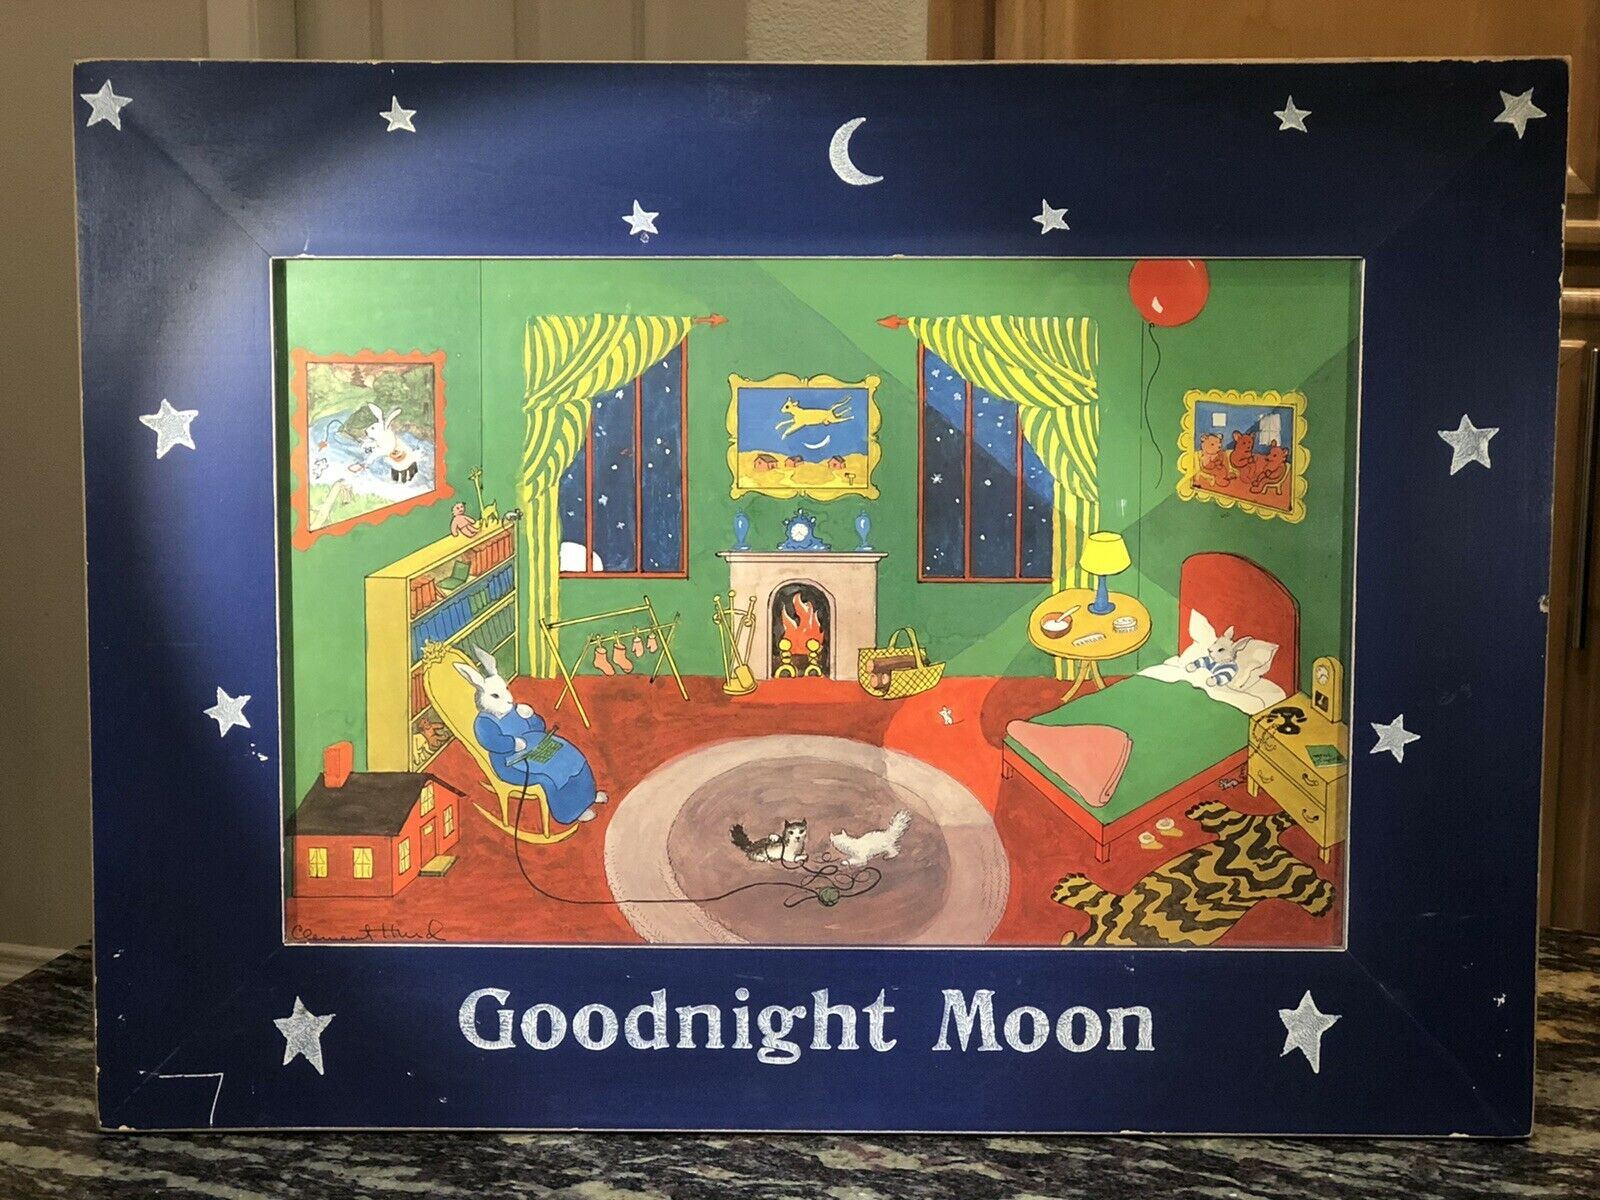 Vintage Goodnight Moon Framed Print by Clement Hurd (1993)  on eBay thumbnail